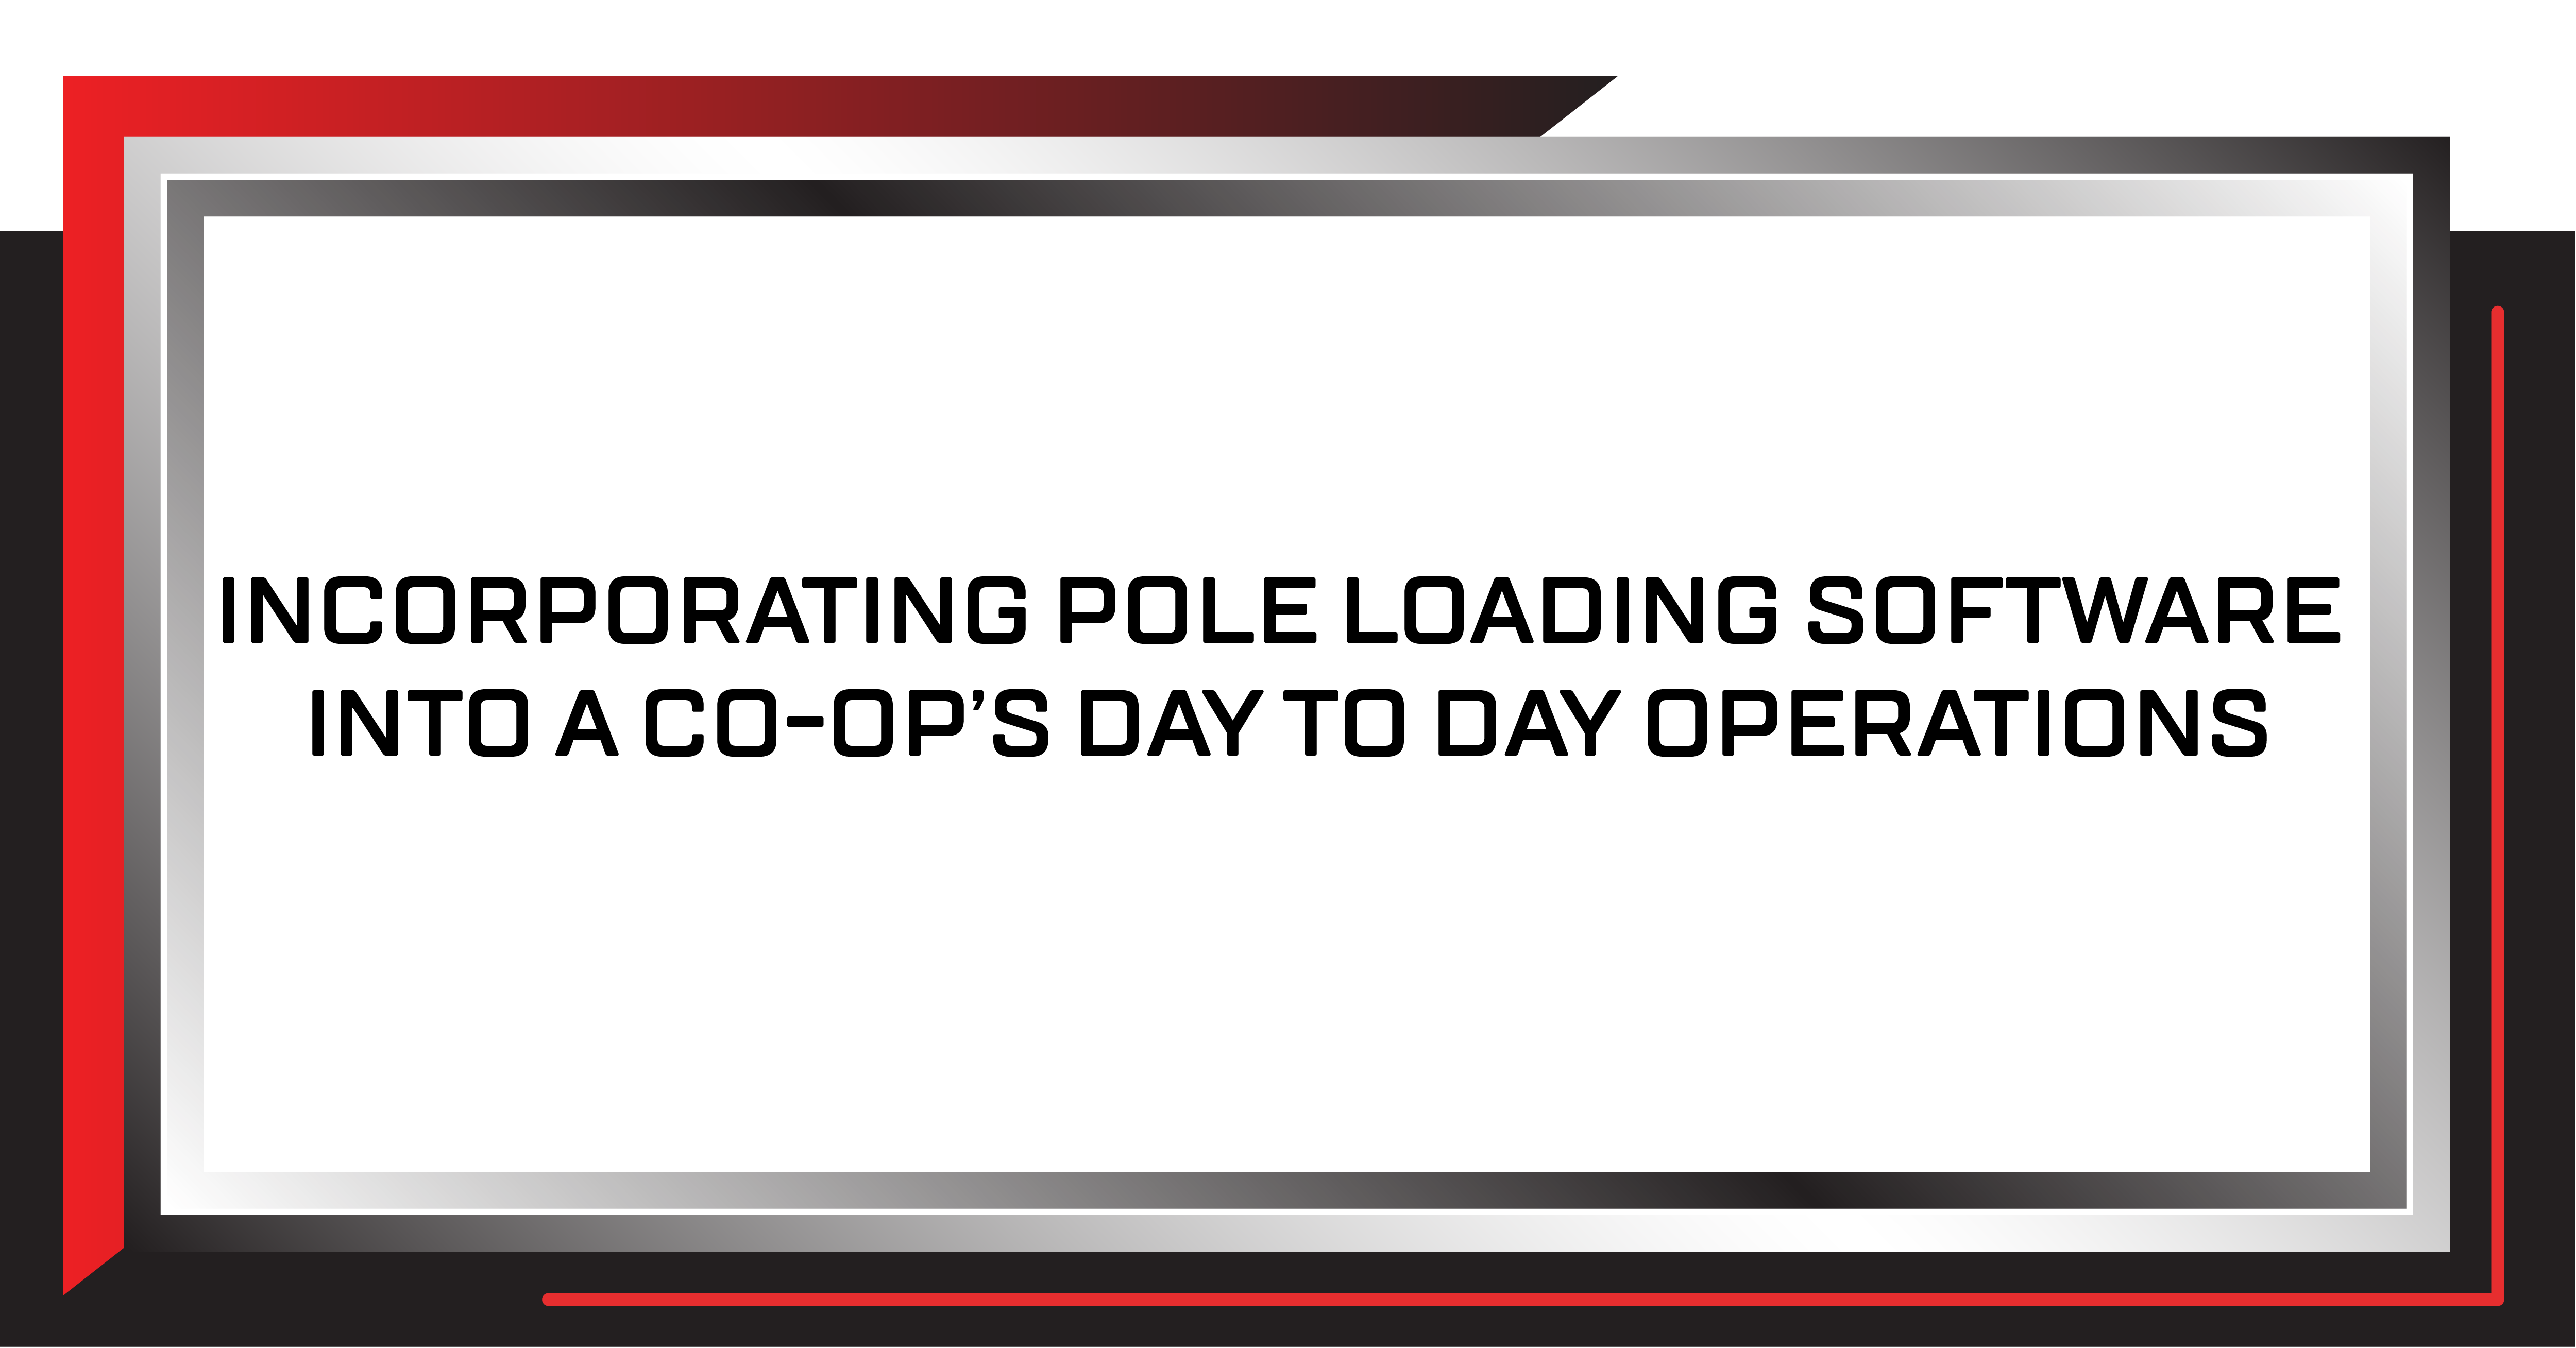 Incorporating Pole Loading Software into a Co-Op's Day to Day Operations